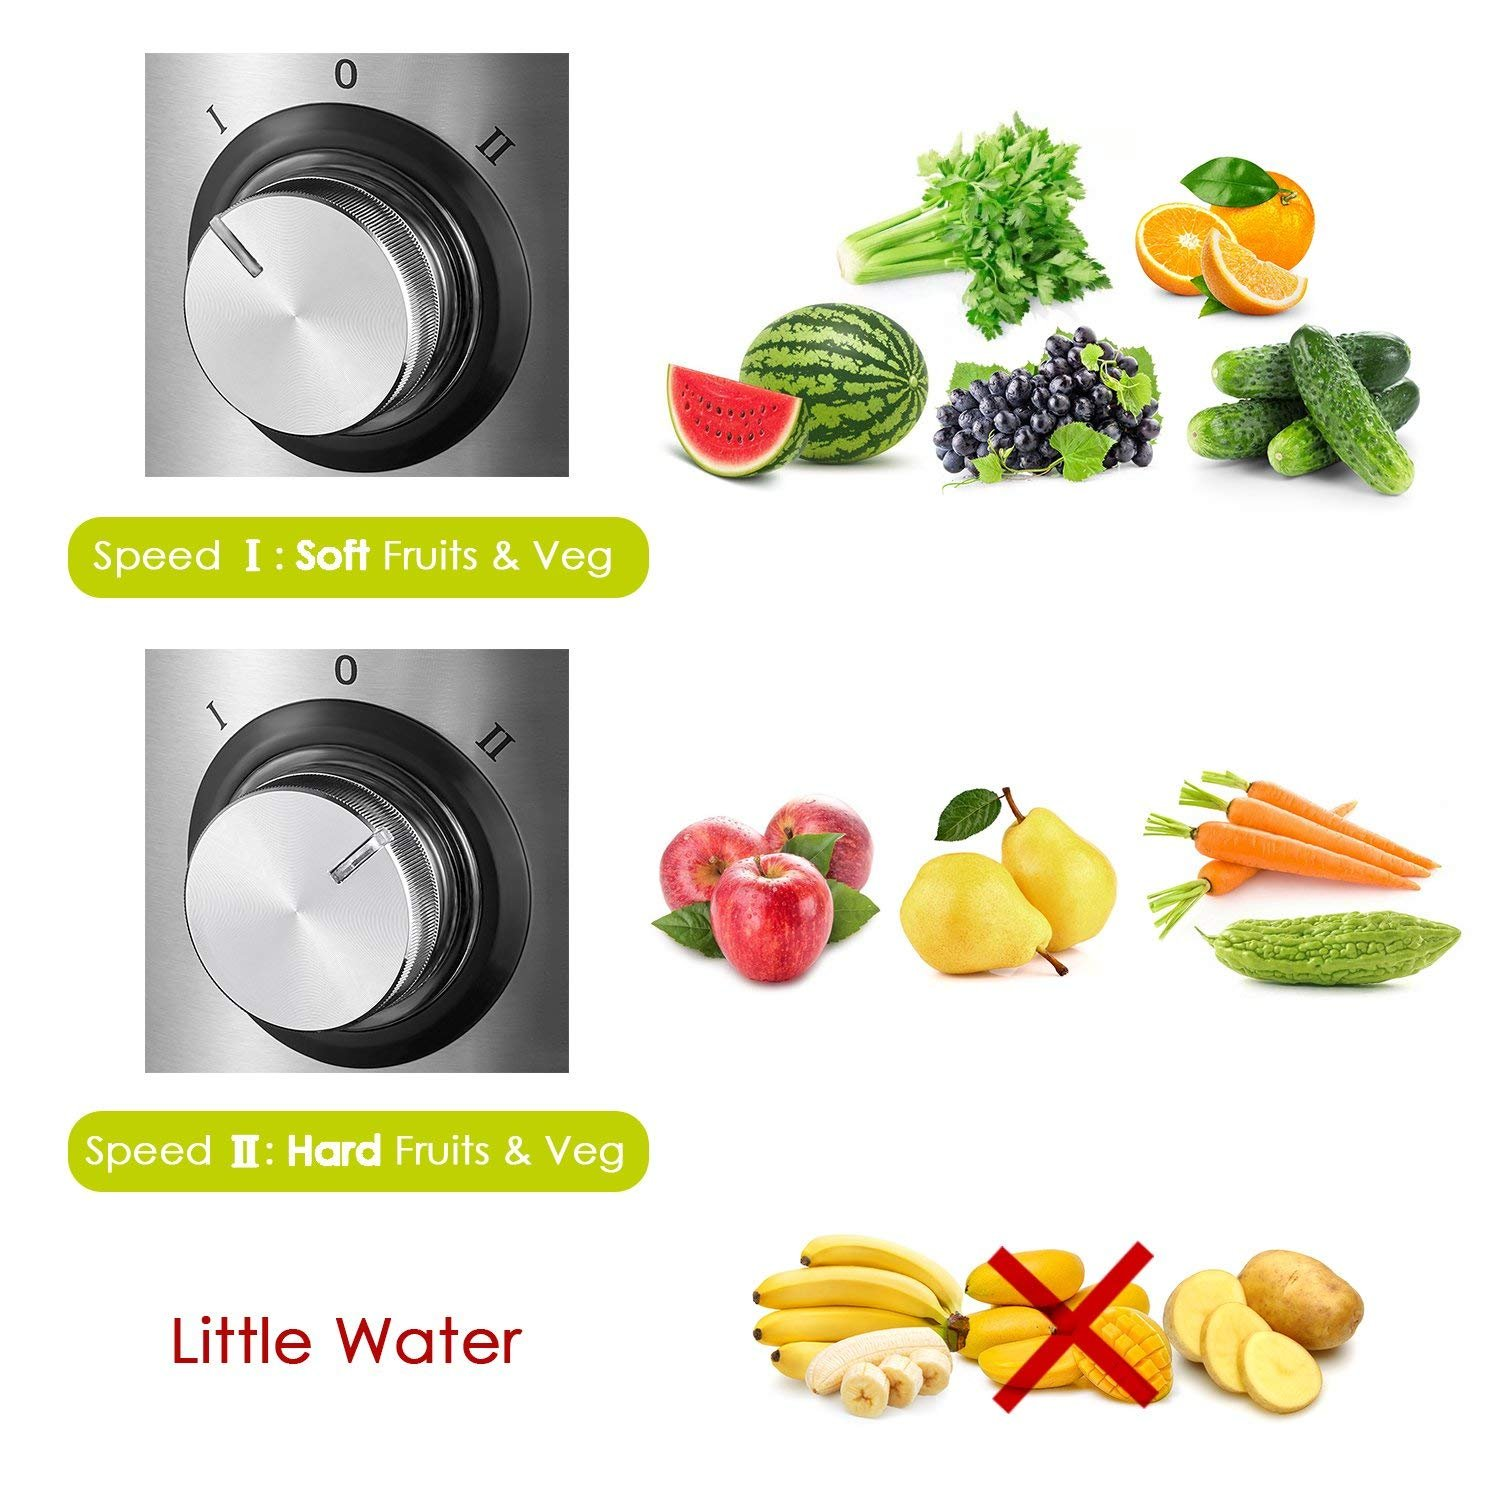 Juicer 1000W Powerful Juice Extractor, Aicok 76MM Wide Mouth Centrifugal Juicer Machine for Whole Fruit and Vegetable, Dual Speed Setting, Anti-drip Function, BPA Free by AICOK (Image #4)